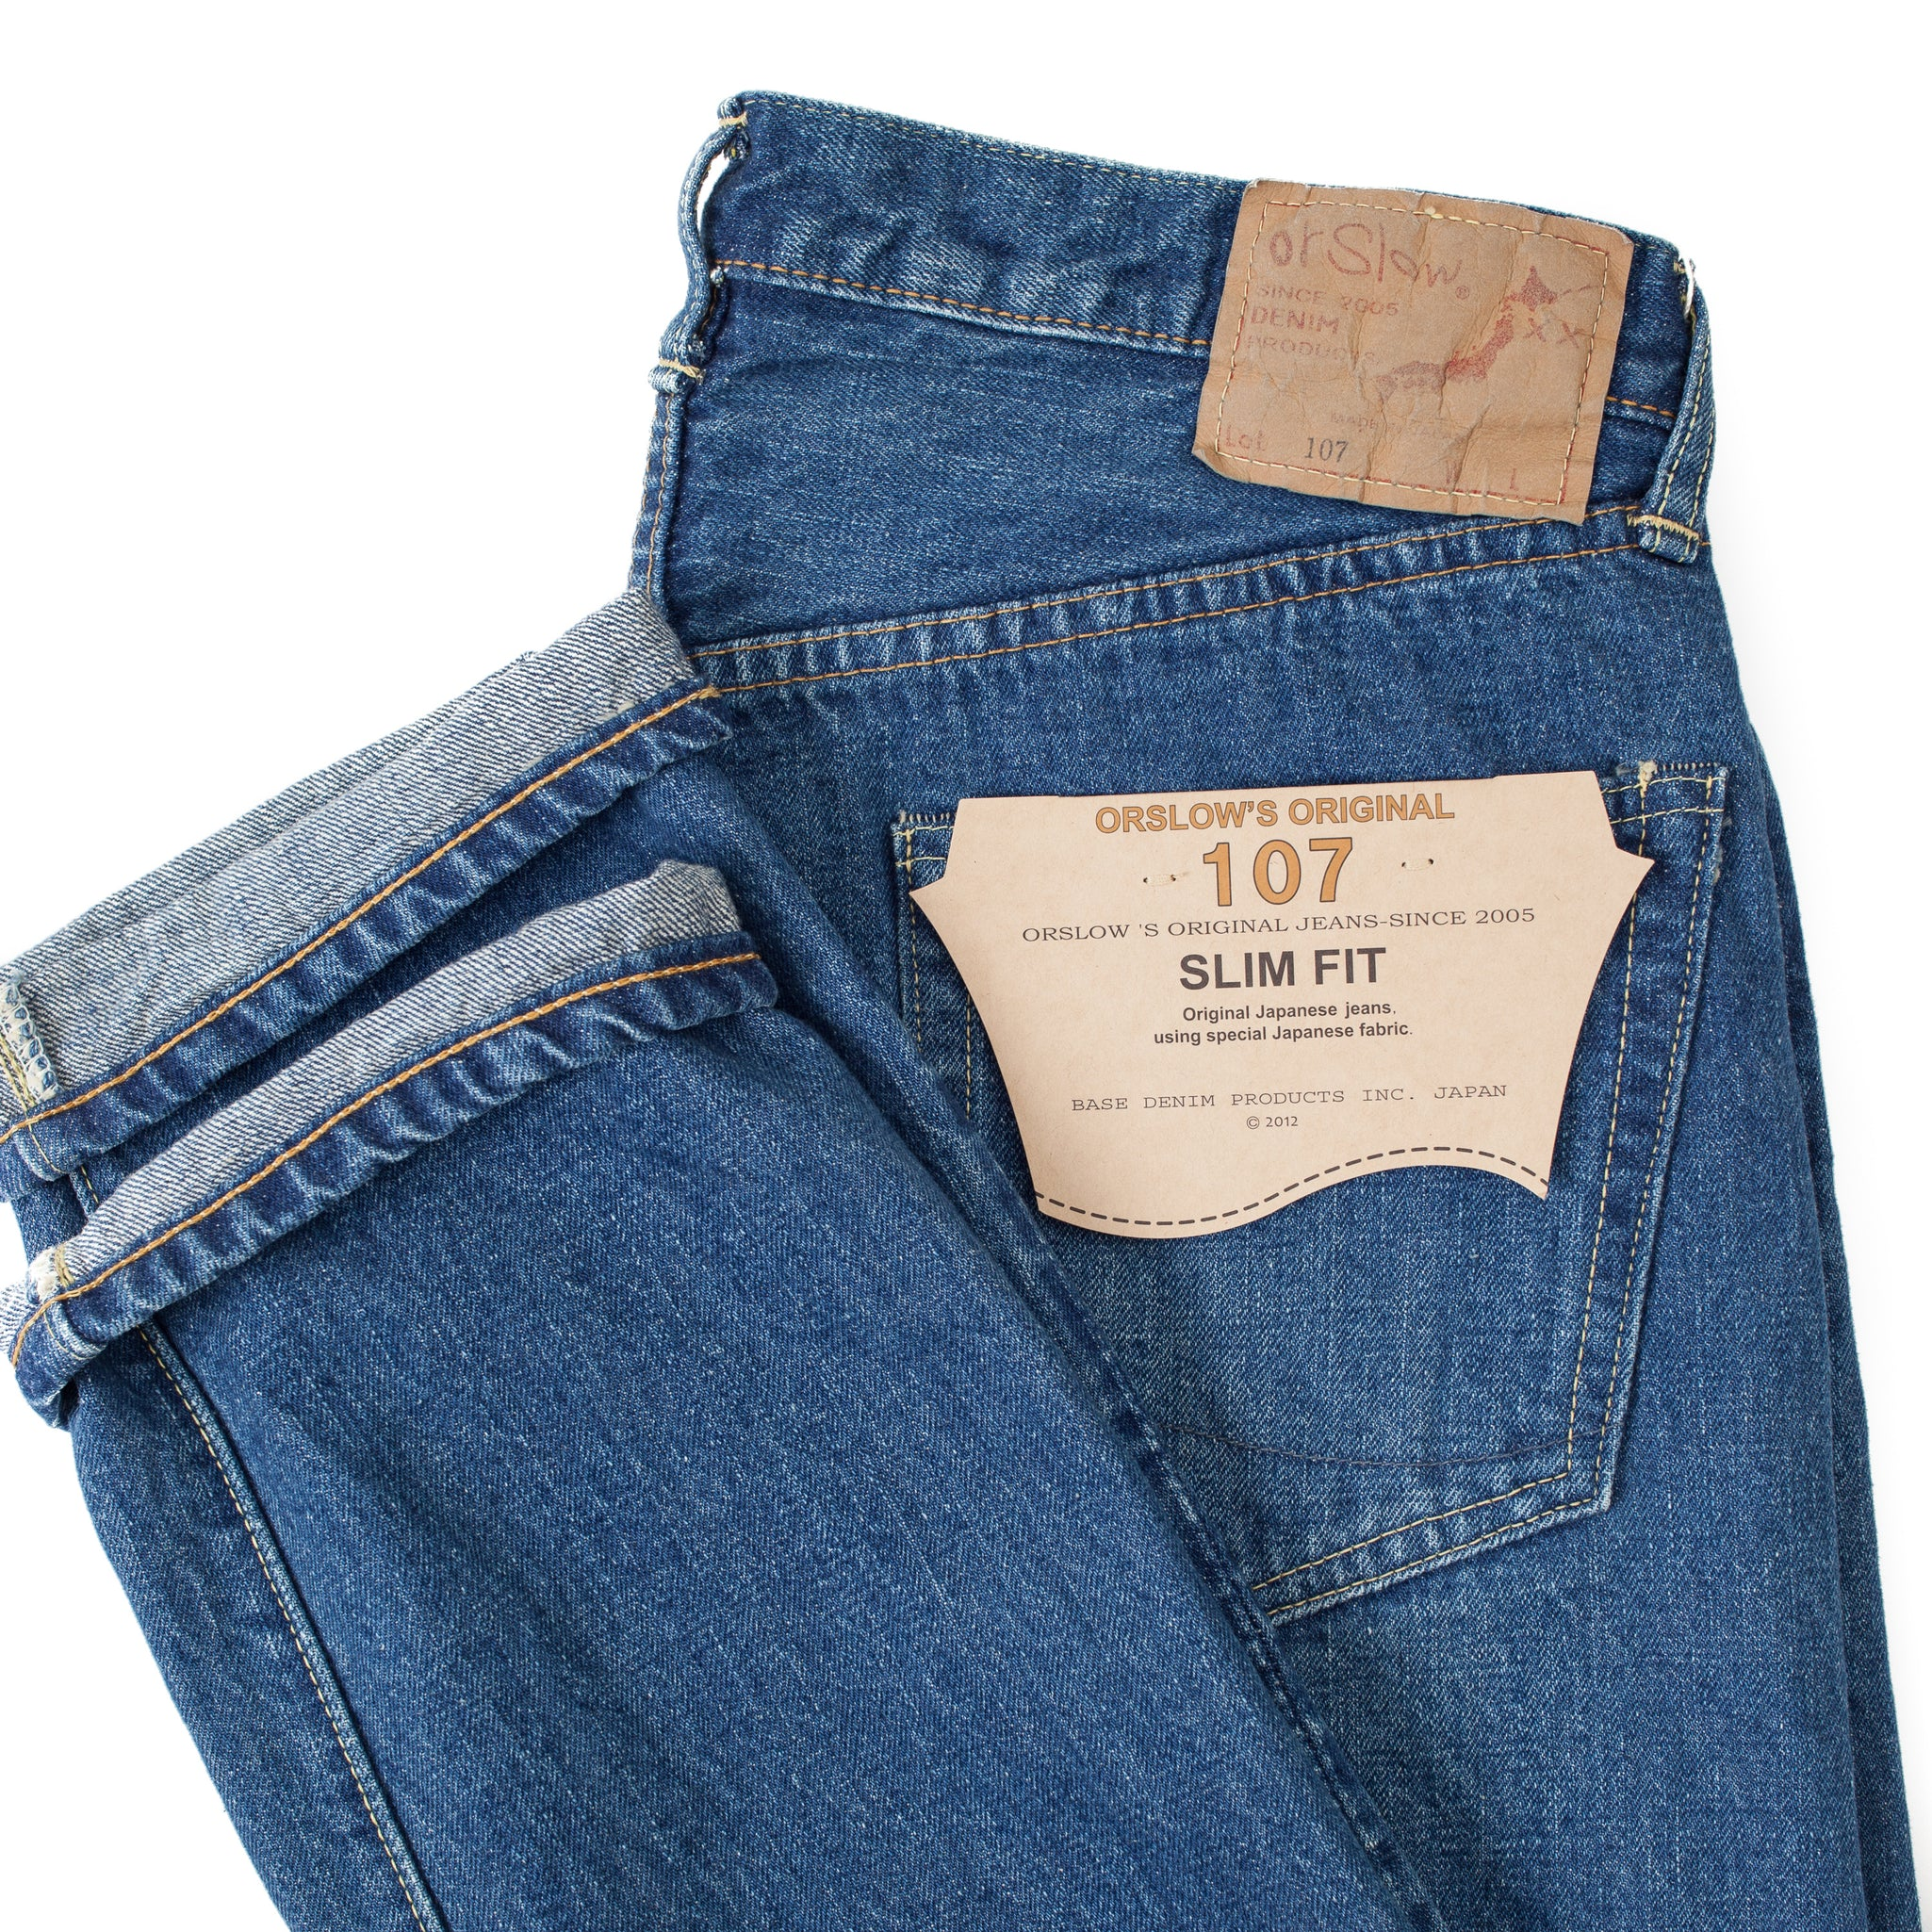 107 Slim Fit 2 Year Wash Denim Pants